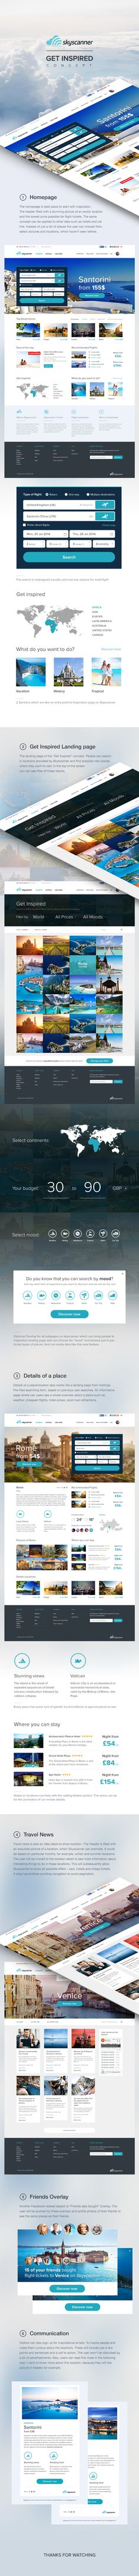 SkyScanner Website Design - Case Study